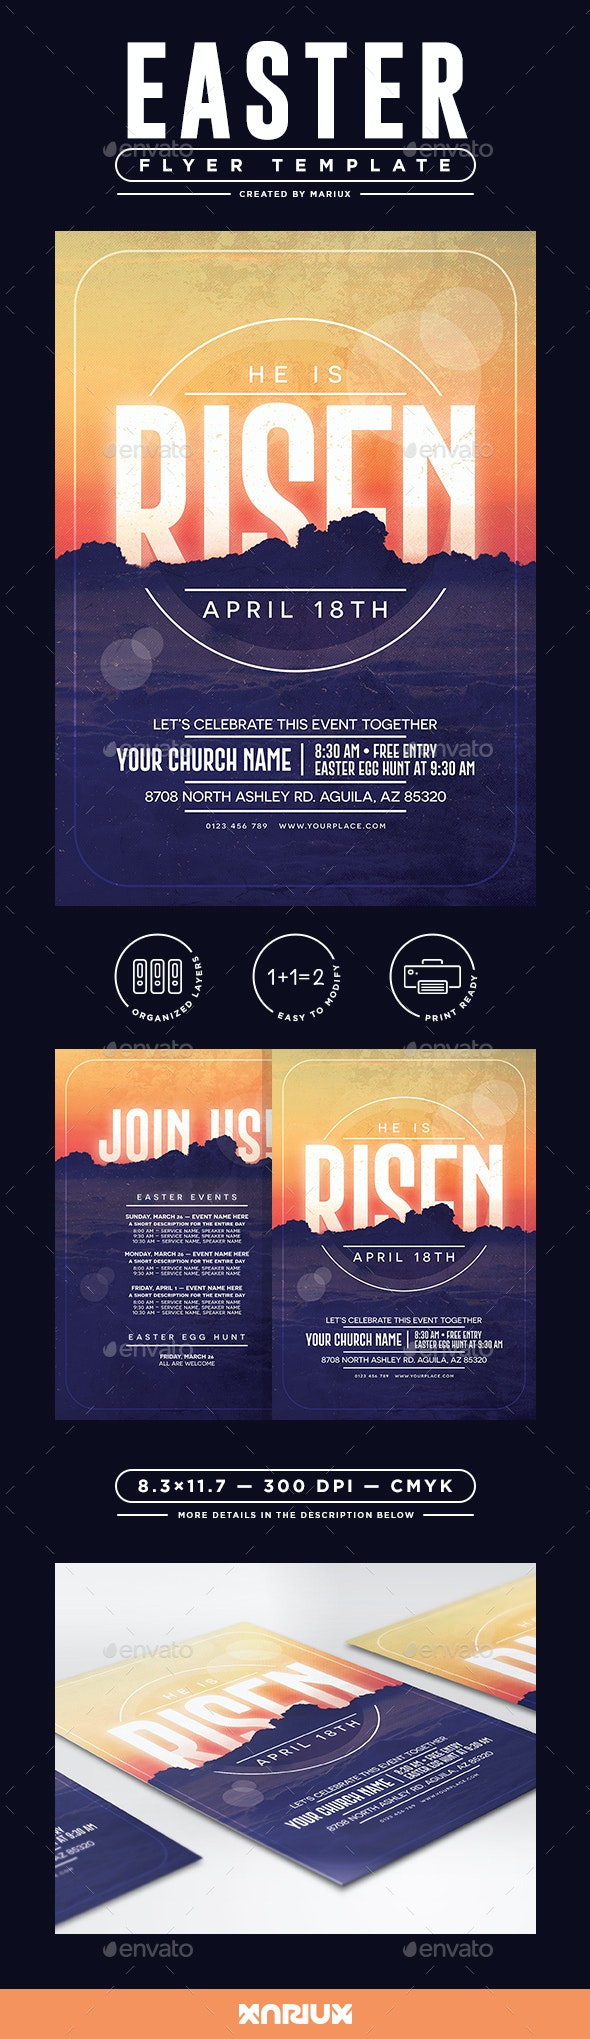 He is Risen Easter Flyer/Poster - Events Flyers